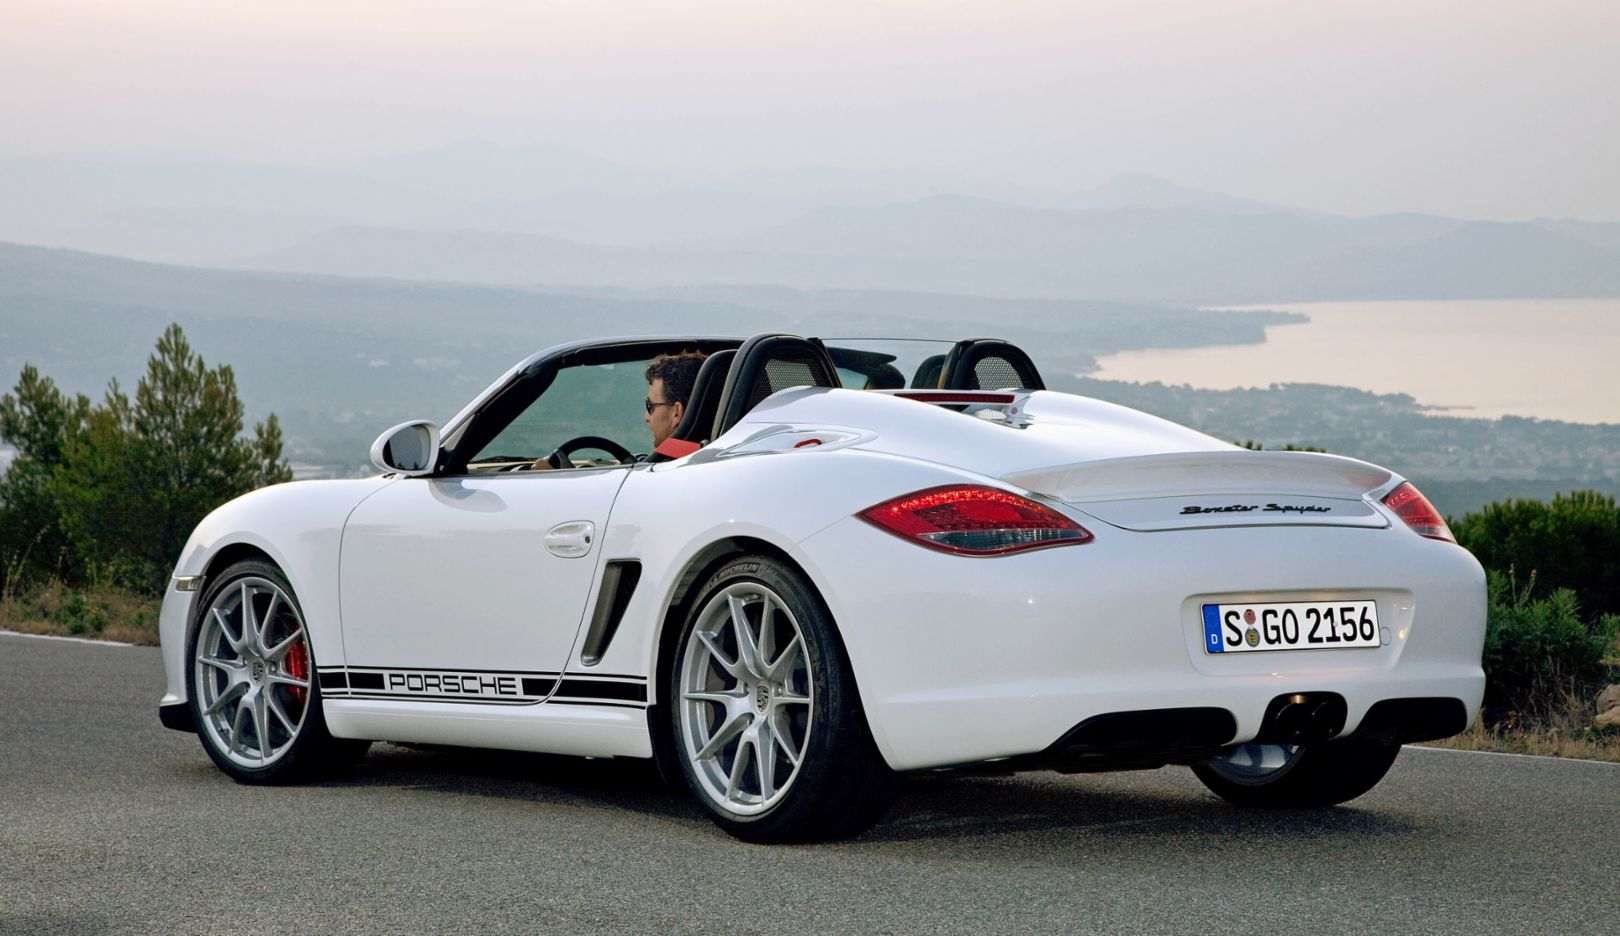 987 generation: Boxster Spyder special edition (2010). The Boxster Spyder becomes known as Porsche's lightest street-legal sports car when it is presented in 2009. It weighs eighty kilograms less than the Boxster S and produces over 10 PS more power.